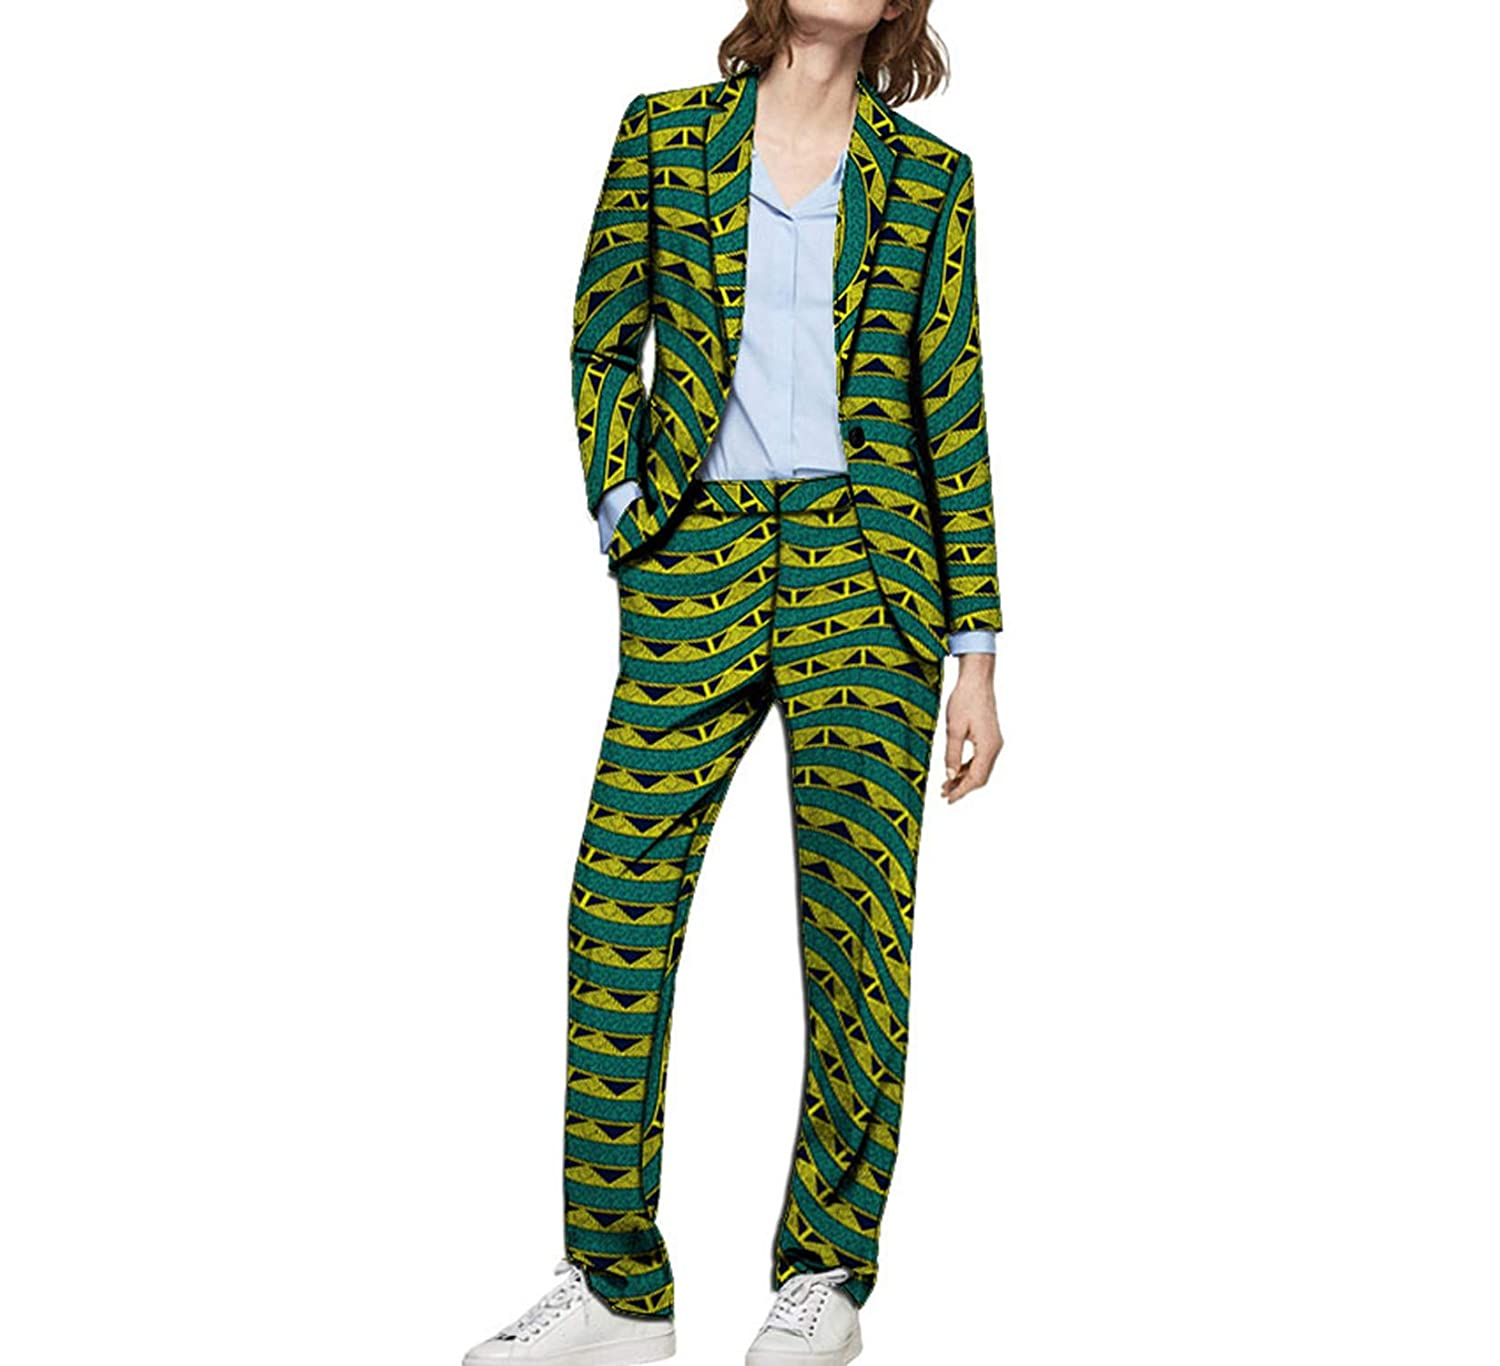 8 Kongsta Fashion Print Women Blazers with Trousers Set Clothing Ladies Pant Suits Wedding Suits Plus Size